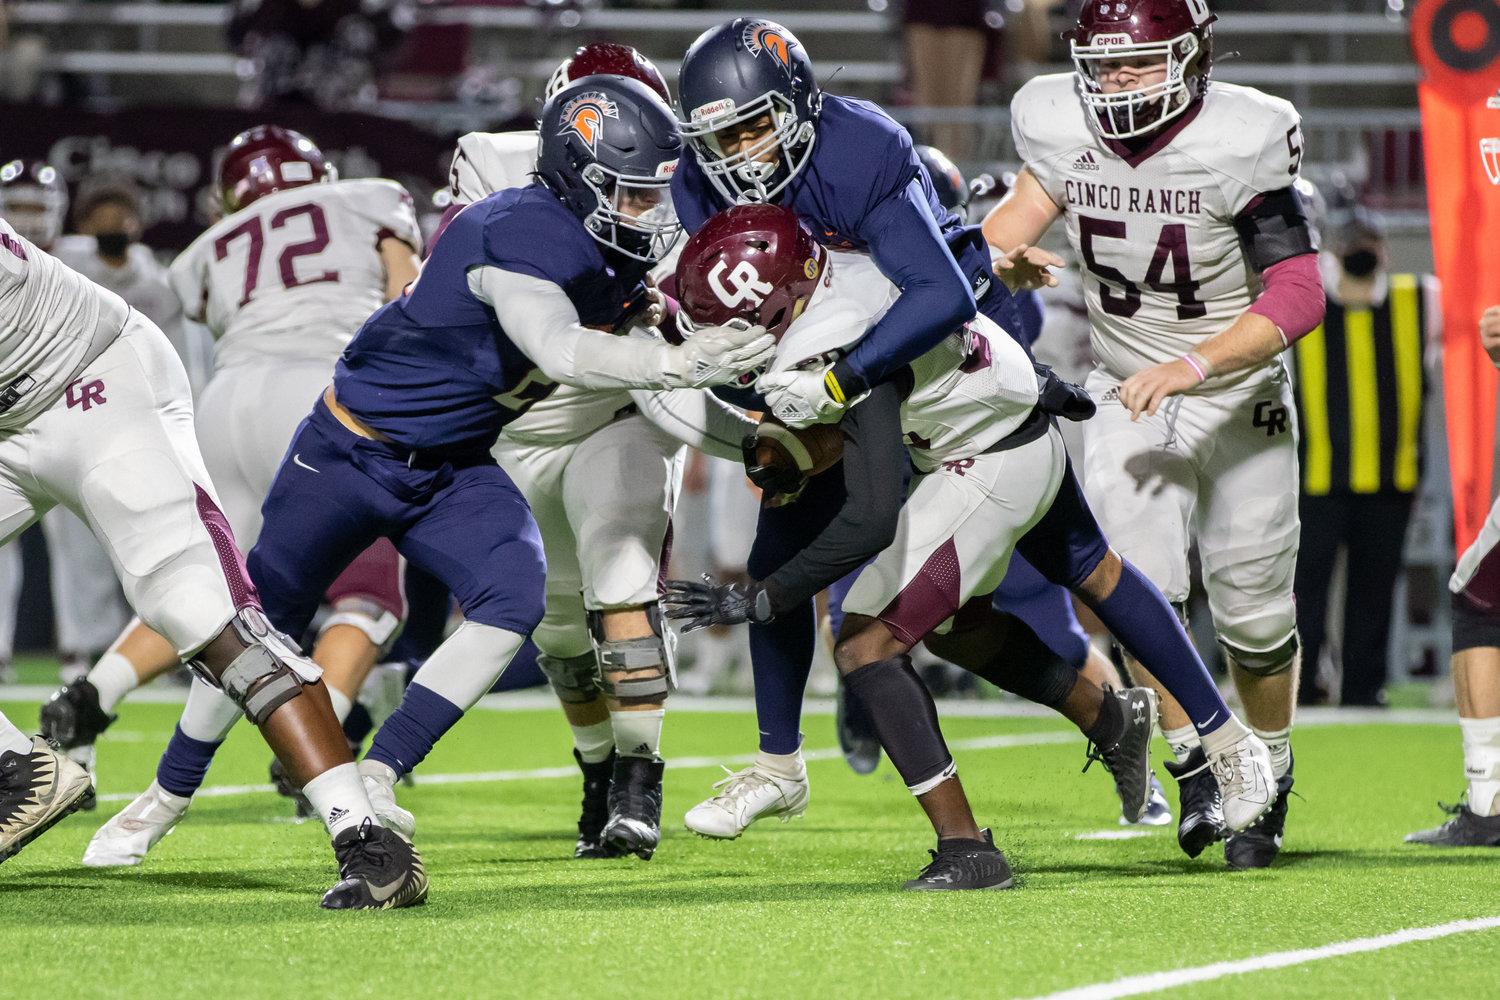 Seven Lakes defenders take down a Cinco Ranch ballcarrier during the Spartans' win over Cinco Ranch on Dec. 4 at Legacy Stadium.